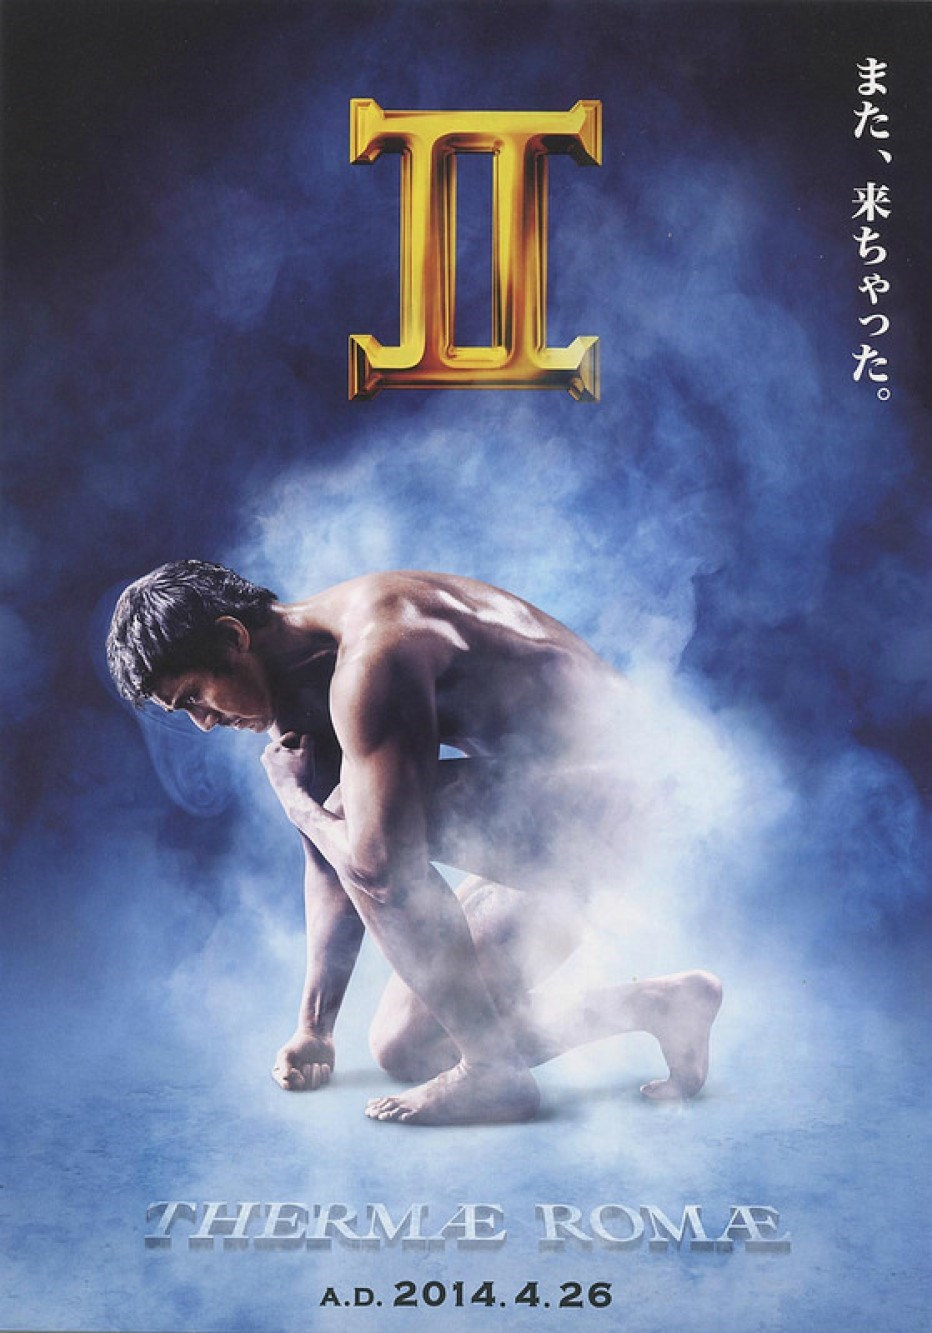 Thermae Romae (Live Action) II - La Mã Cổ Đại [Live Action] II